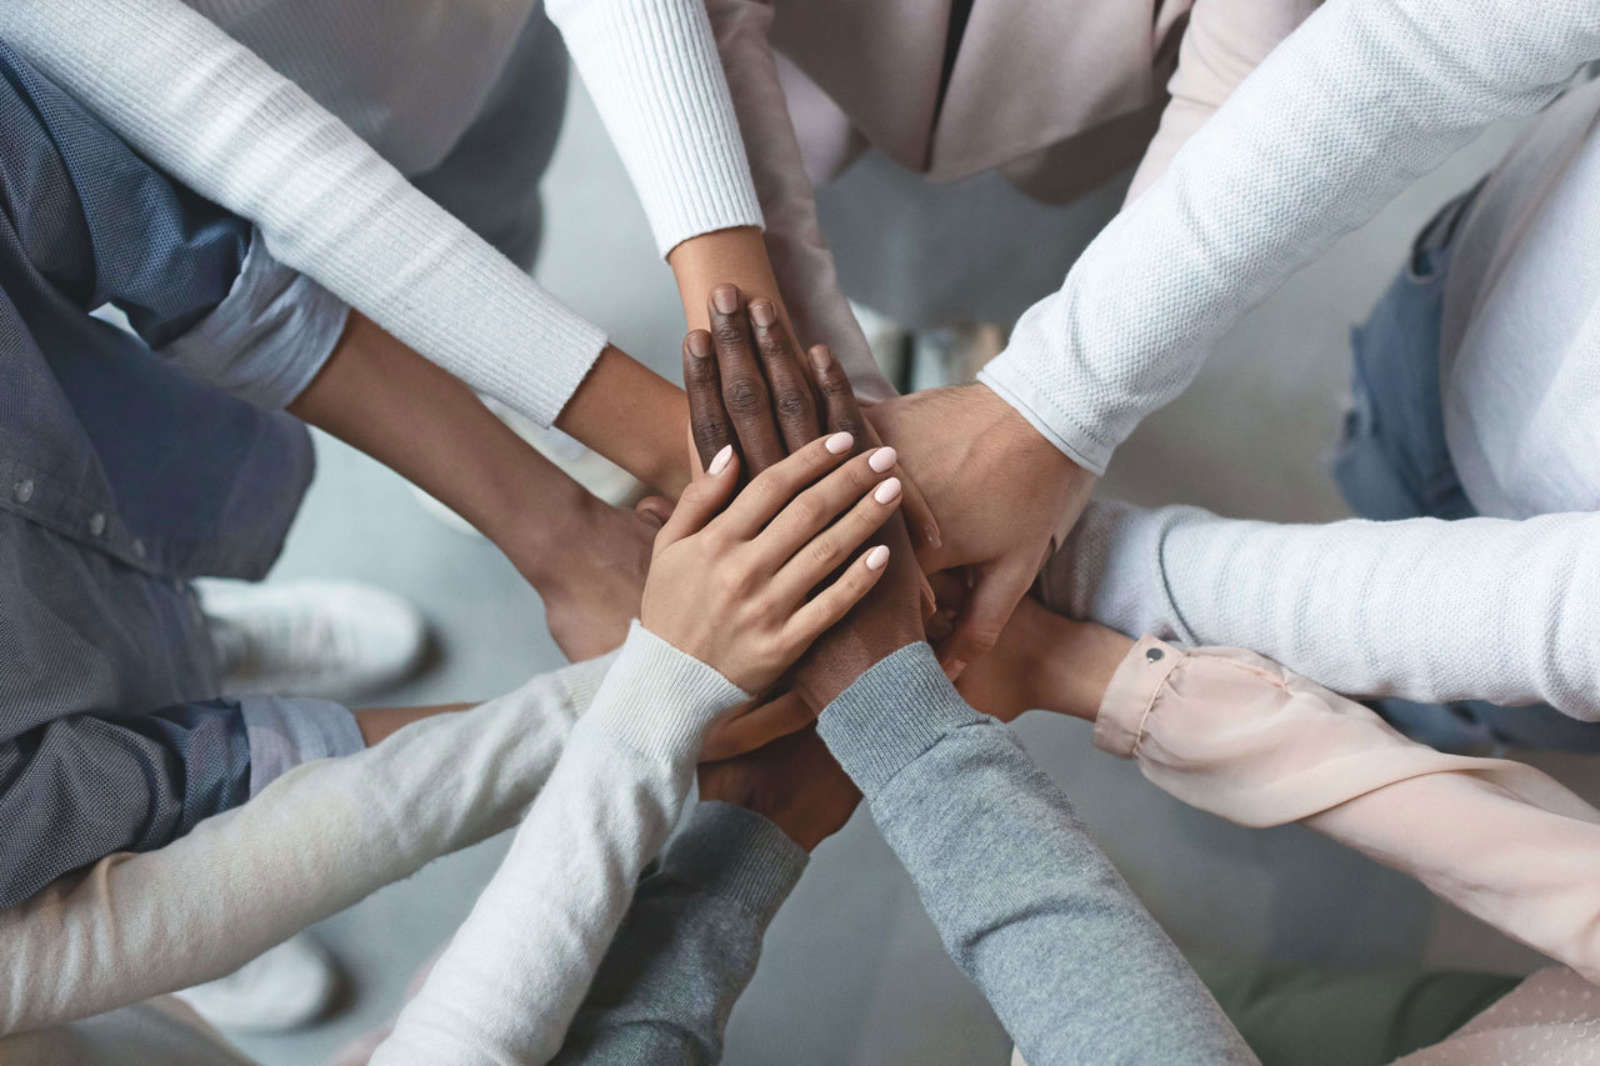 Business partners community team putting hands together on top of each other